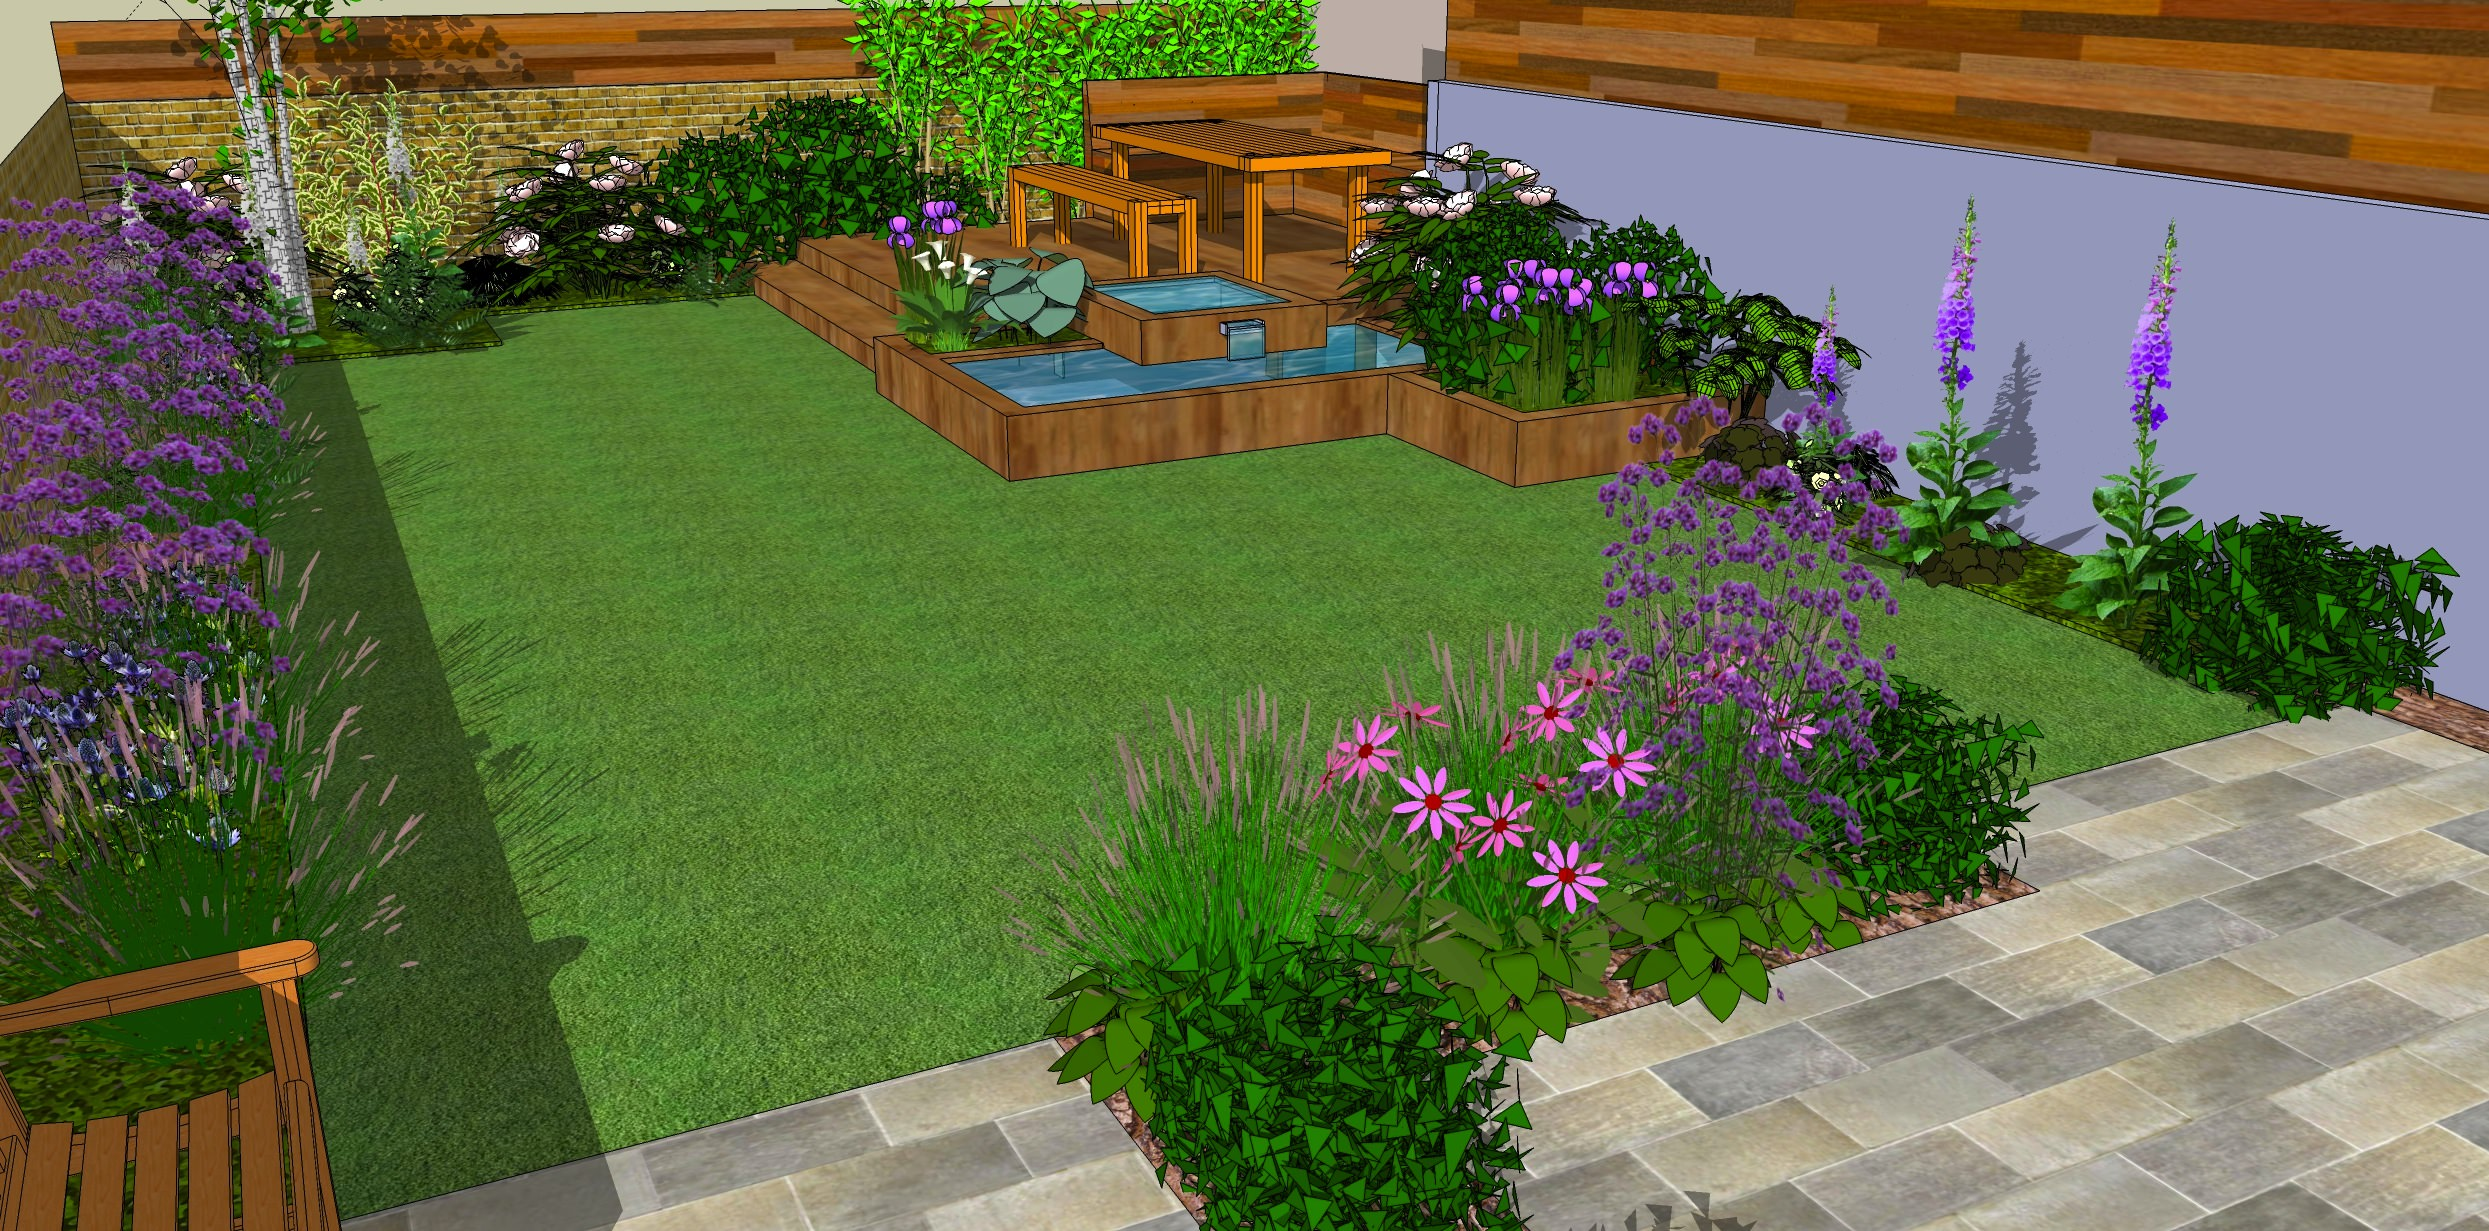 Low maintenance garden designs garden club london for Garden design ideas blog